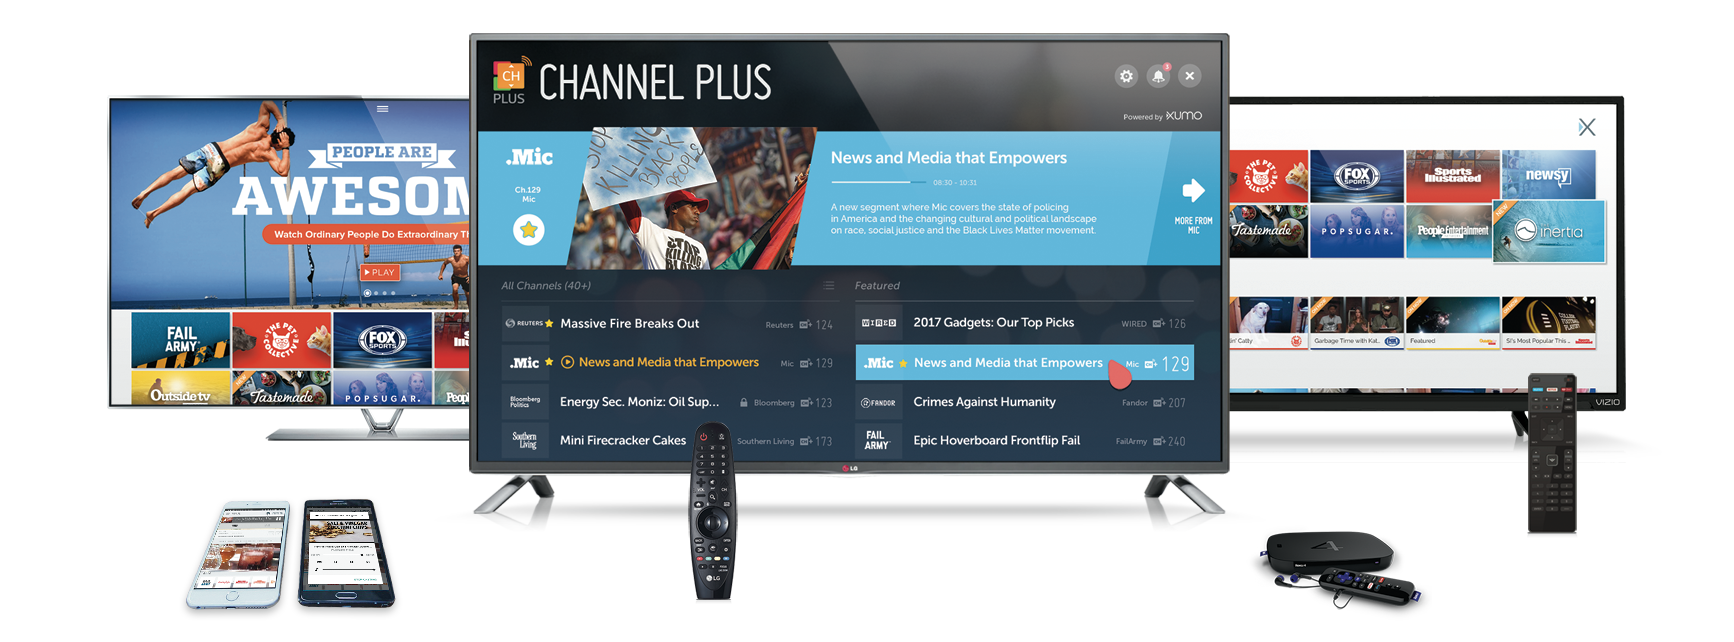 XUMO for smart TV, Roku, iOS and Android